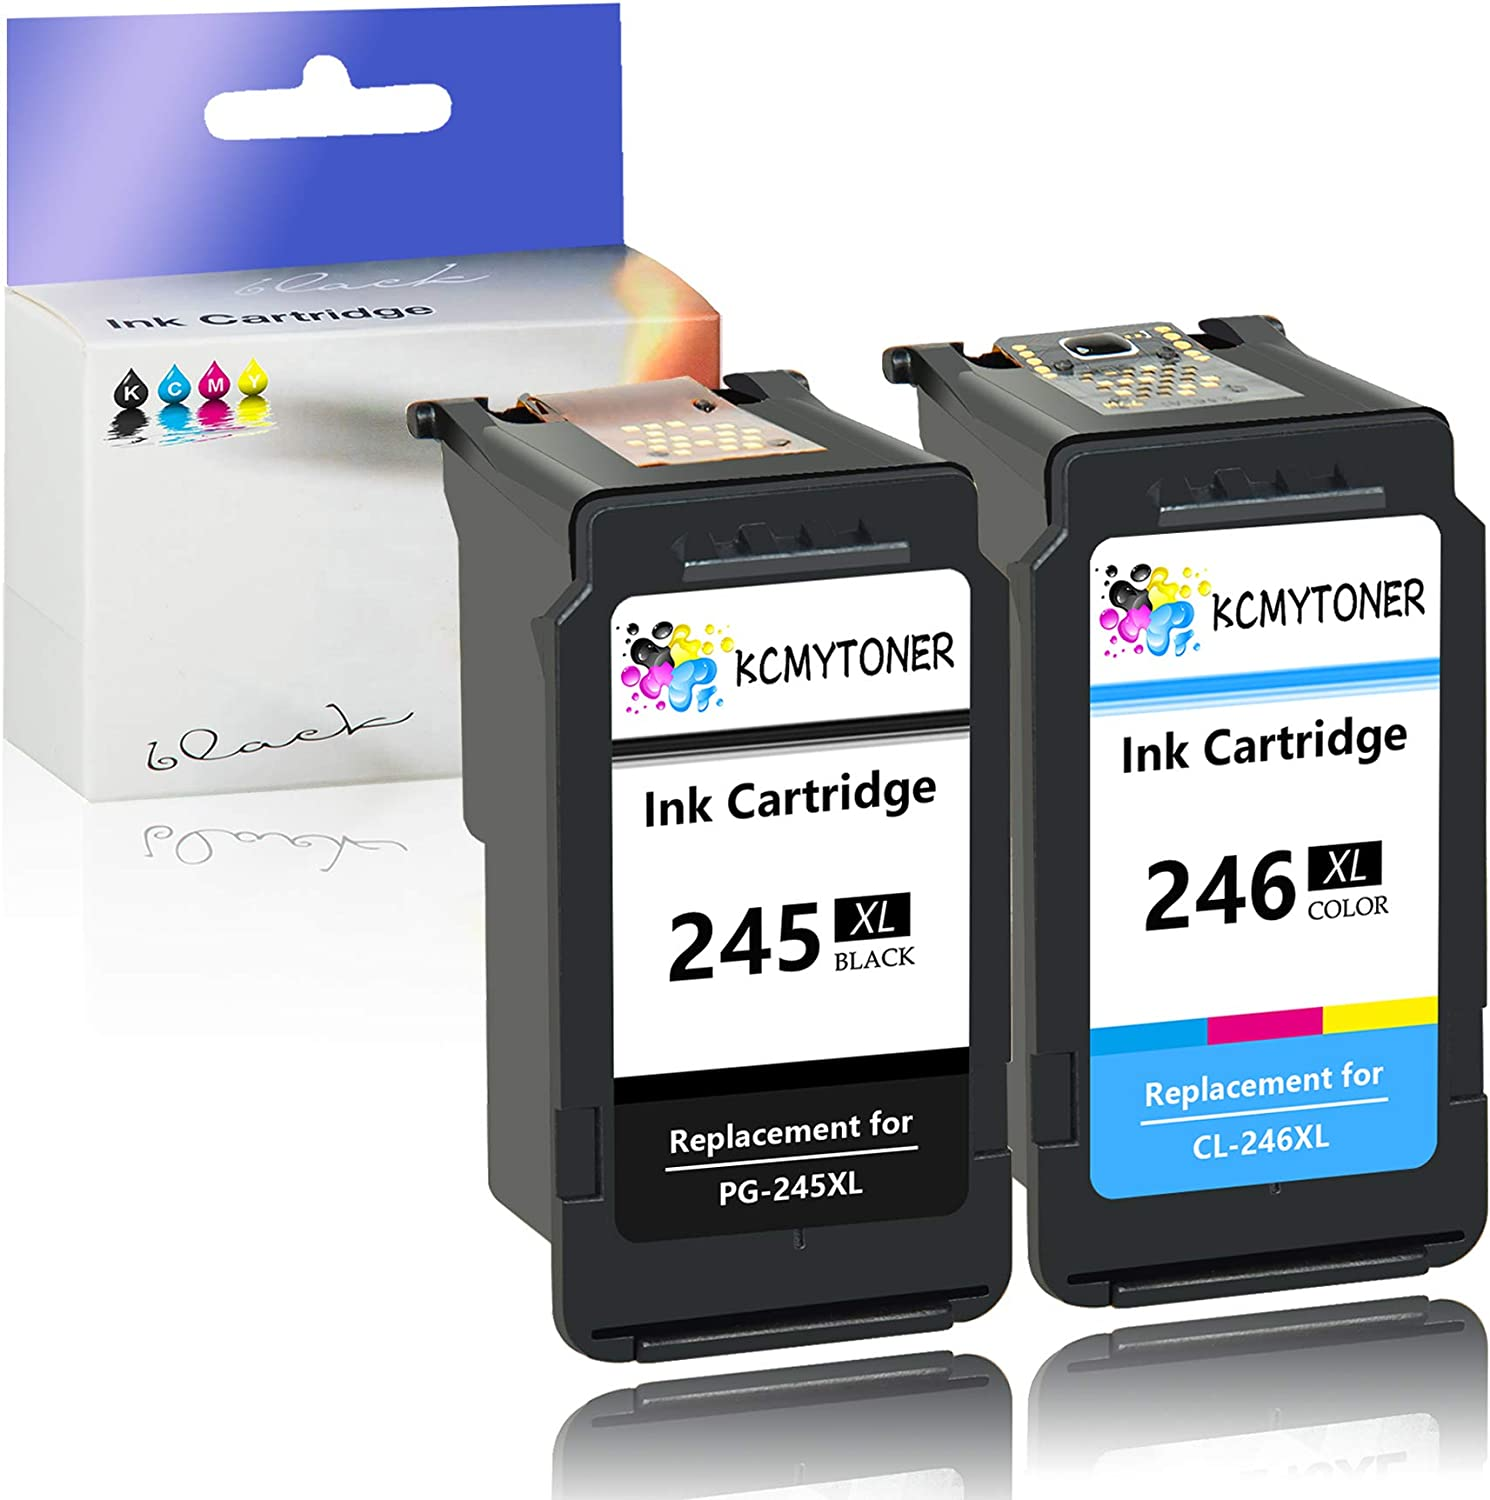 KCMYTONER 10 Pack Remanufactured for PG-245XL PG245XL Black Ink Cartridge Shows Ink Level Used with PIXMA MX492 MG3020 MG2920 MG2924 iP2820 MG2525 MG2420 Printers